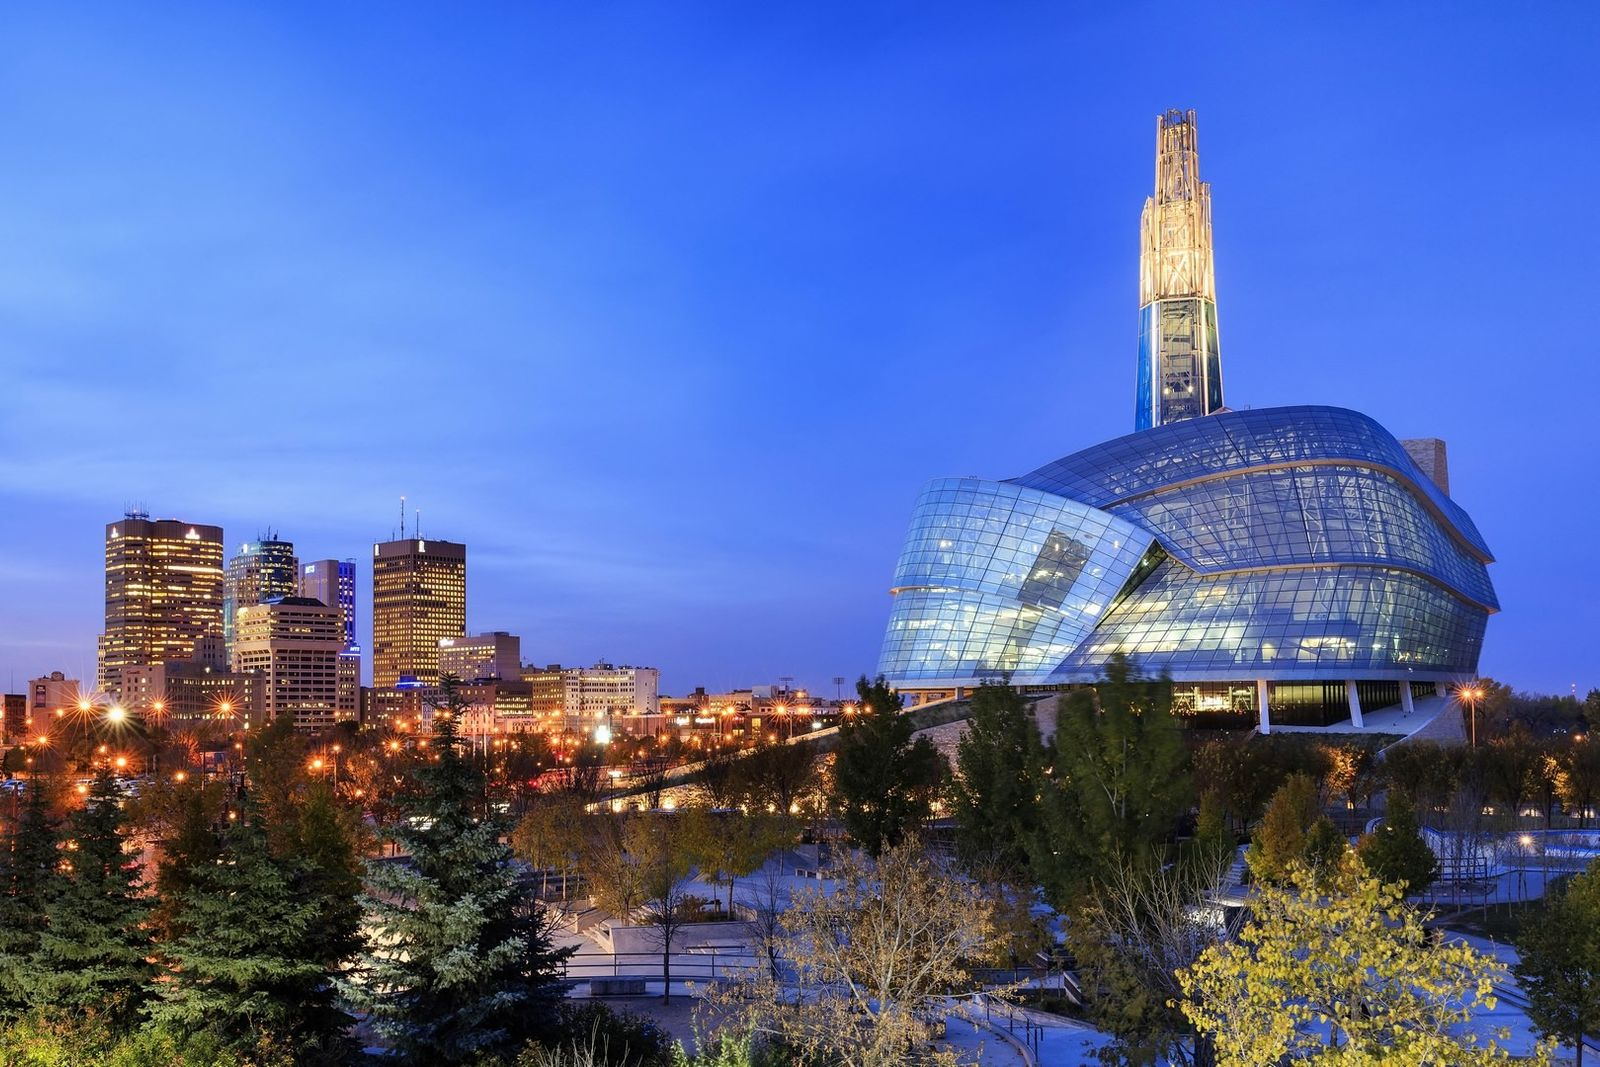 The interactive Canadian Museum for Human Rights takes visitors on a journey from darkness to light ...